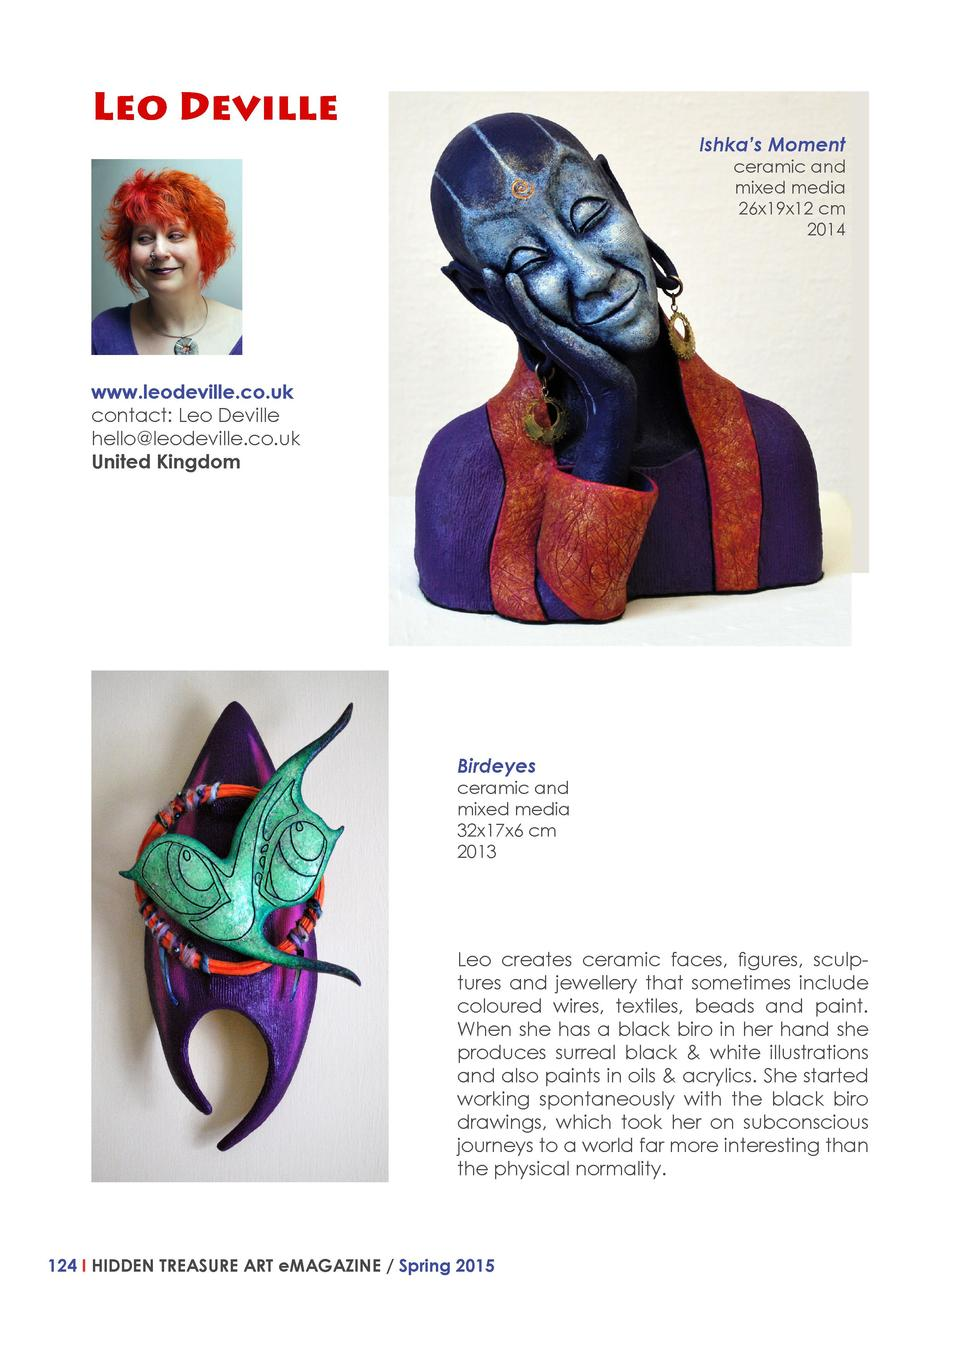 Leo Deville  Ishka   s Moment ceramic and mixed media 26x19x12 cm 2014  www.leodeville.co.uk contact  Leo Deville hello le...